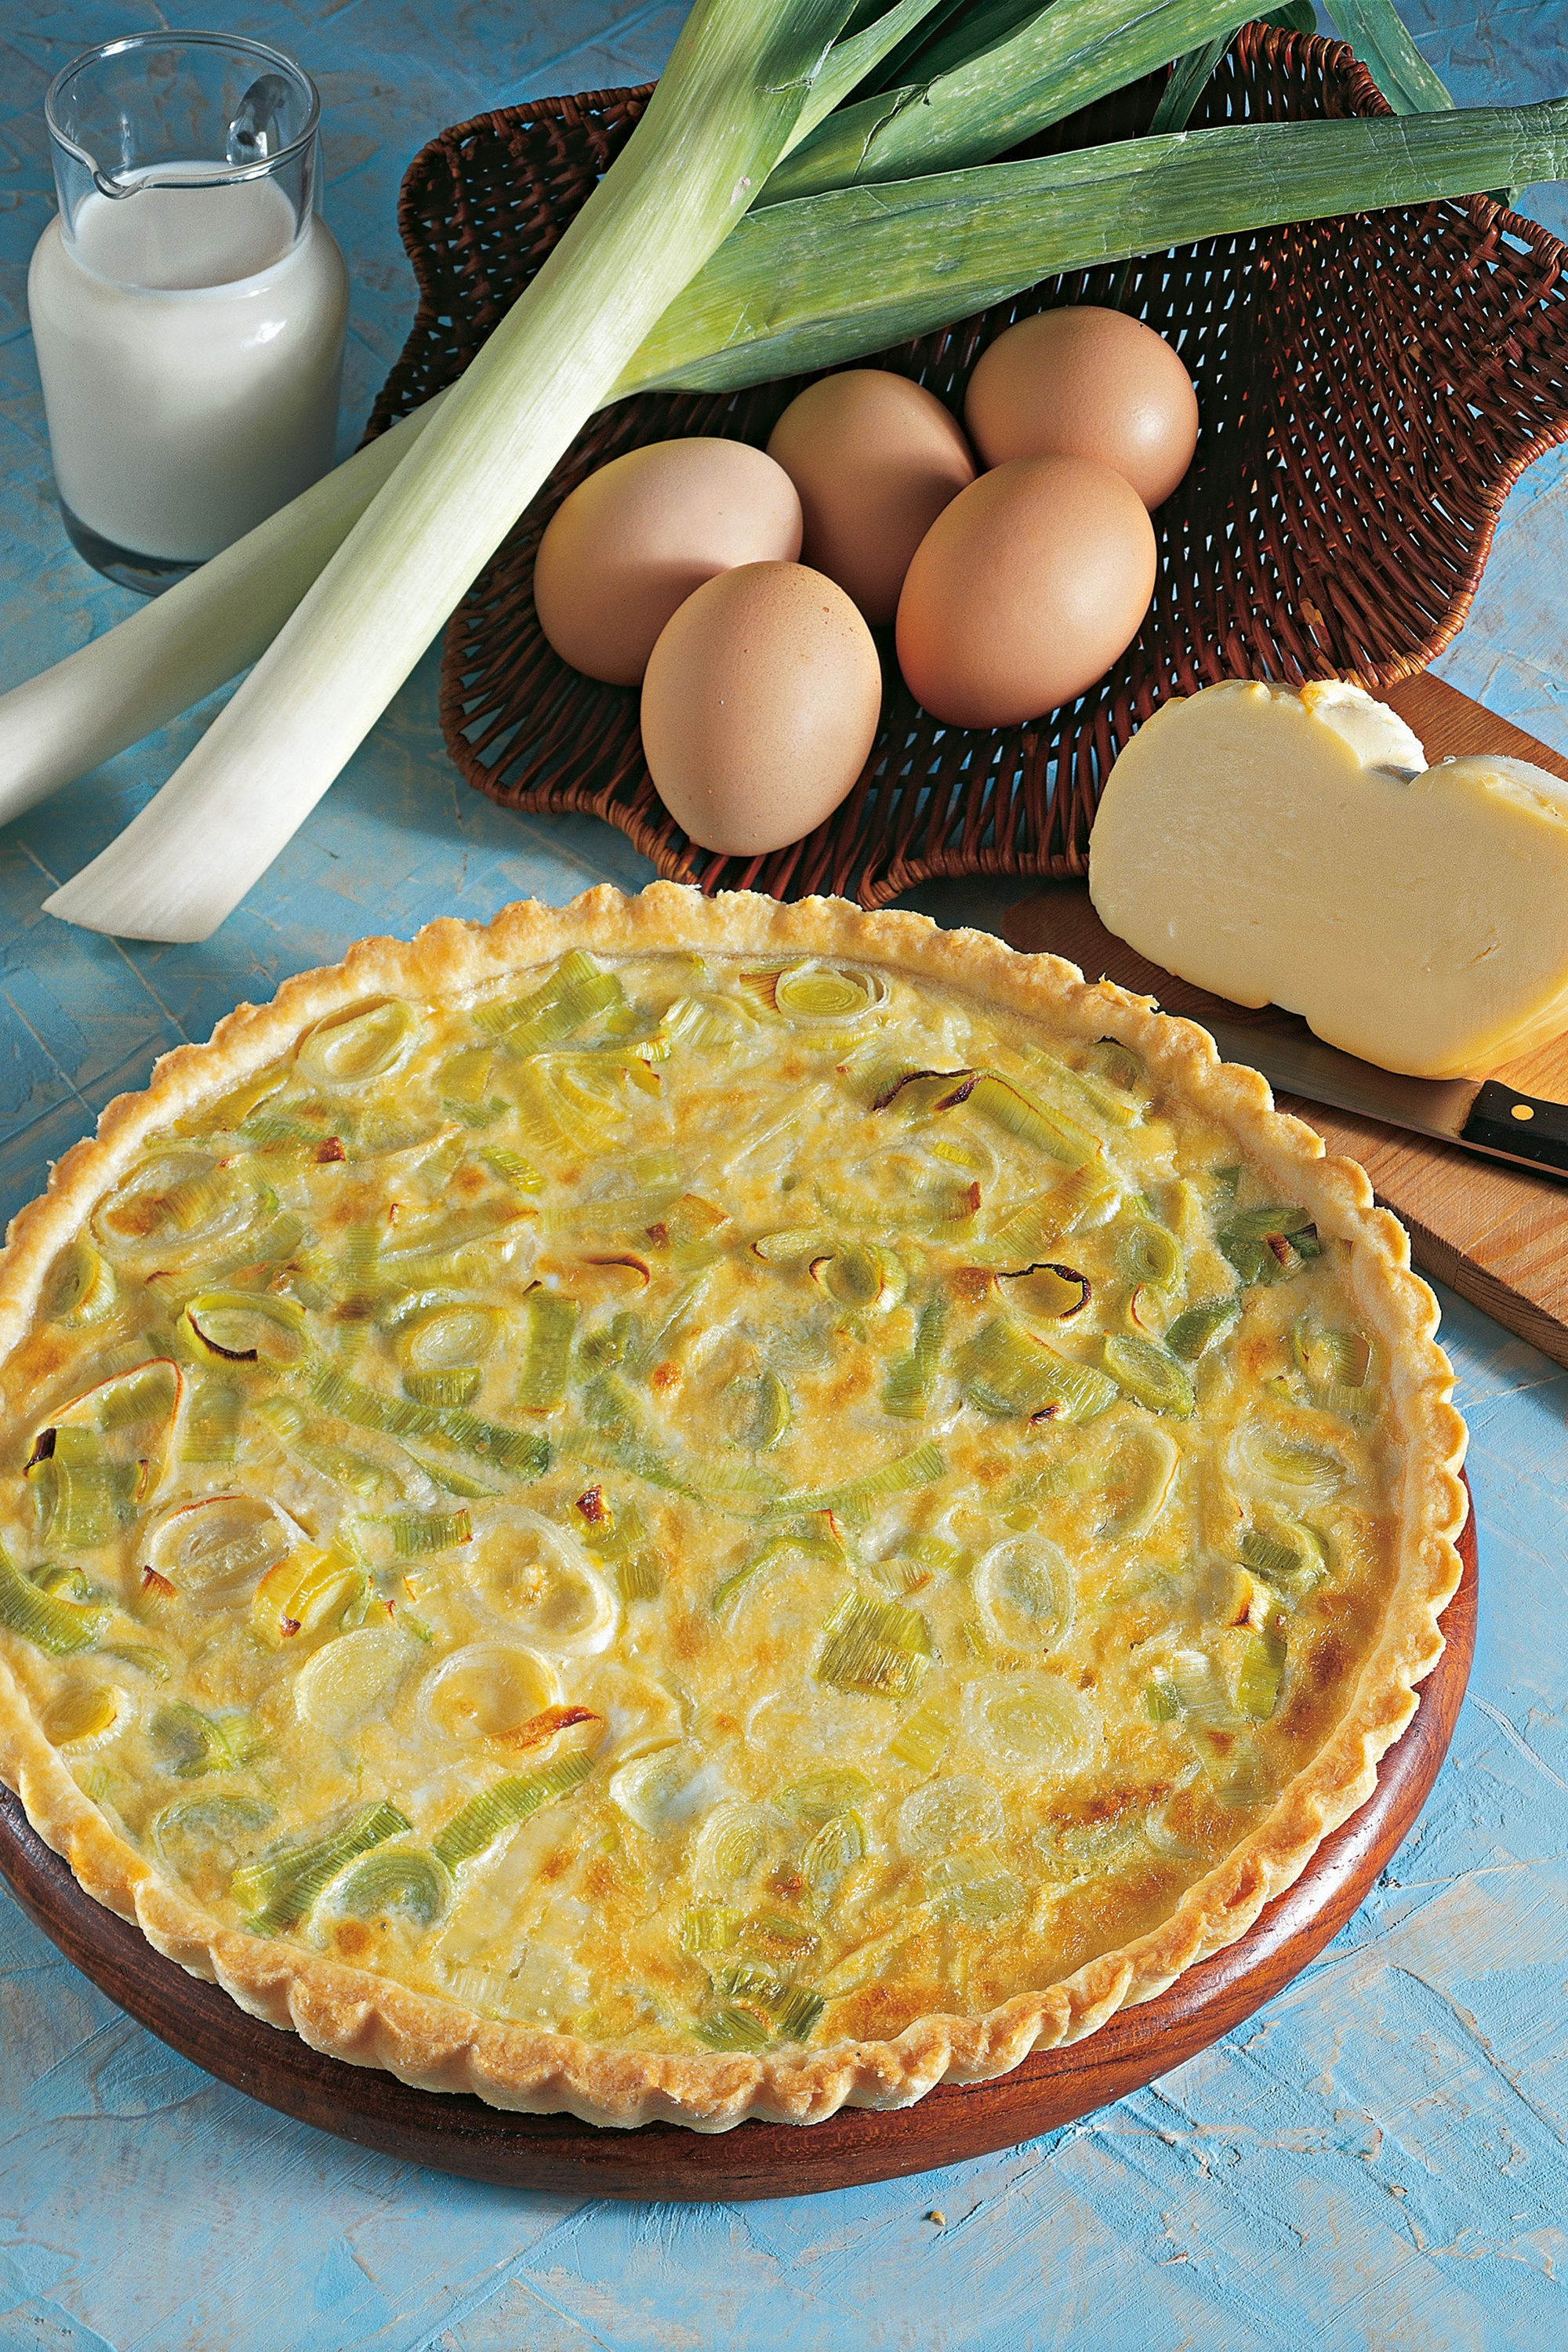 "<p><em data-redactor-tag=""em"" data-verified=""redactor"">Ooh la la</em>! This <a href=""http://www.goodhousekeeping.com/food-recipes/easy/g4258/quiche-recipes/"" target=""_blank"" data-tracking-id=""recirc-text-link"">fancy French dish</a> will come out looking like a culinary genius made it.</p><p><span class=""redactor-invisible-space"" data-verified=""redactor"" data-redactor-tag=""span"" data-redactor-class=""redactor-invisible-space""><a href=""http://www.goodhousekeeping.com/food-recipes/a11994/smoked-ham-leek-gruyere-quiche-recipe-122913/"" target=""_blank"" data-tracking-id=""recirc-text-link""><em data-redactor-tag=""em"" data-verified=""redactor"" data-tracking-id=""recirc-text-link"">Get the recipe for Smoked Ham, Leek and Gruyère Quiche »</em></a></span></p>"